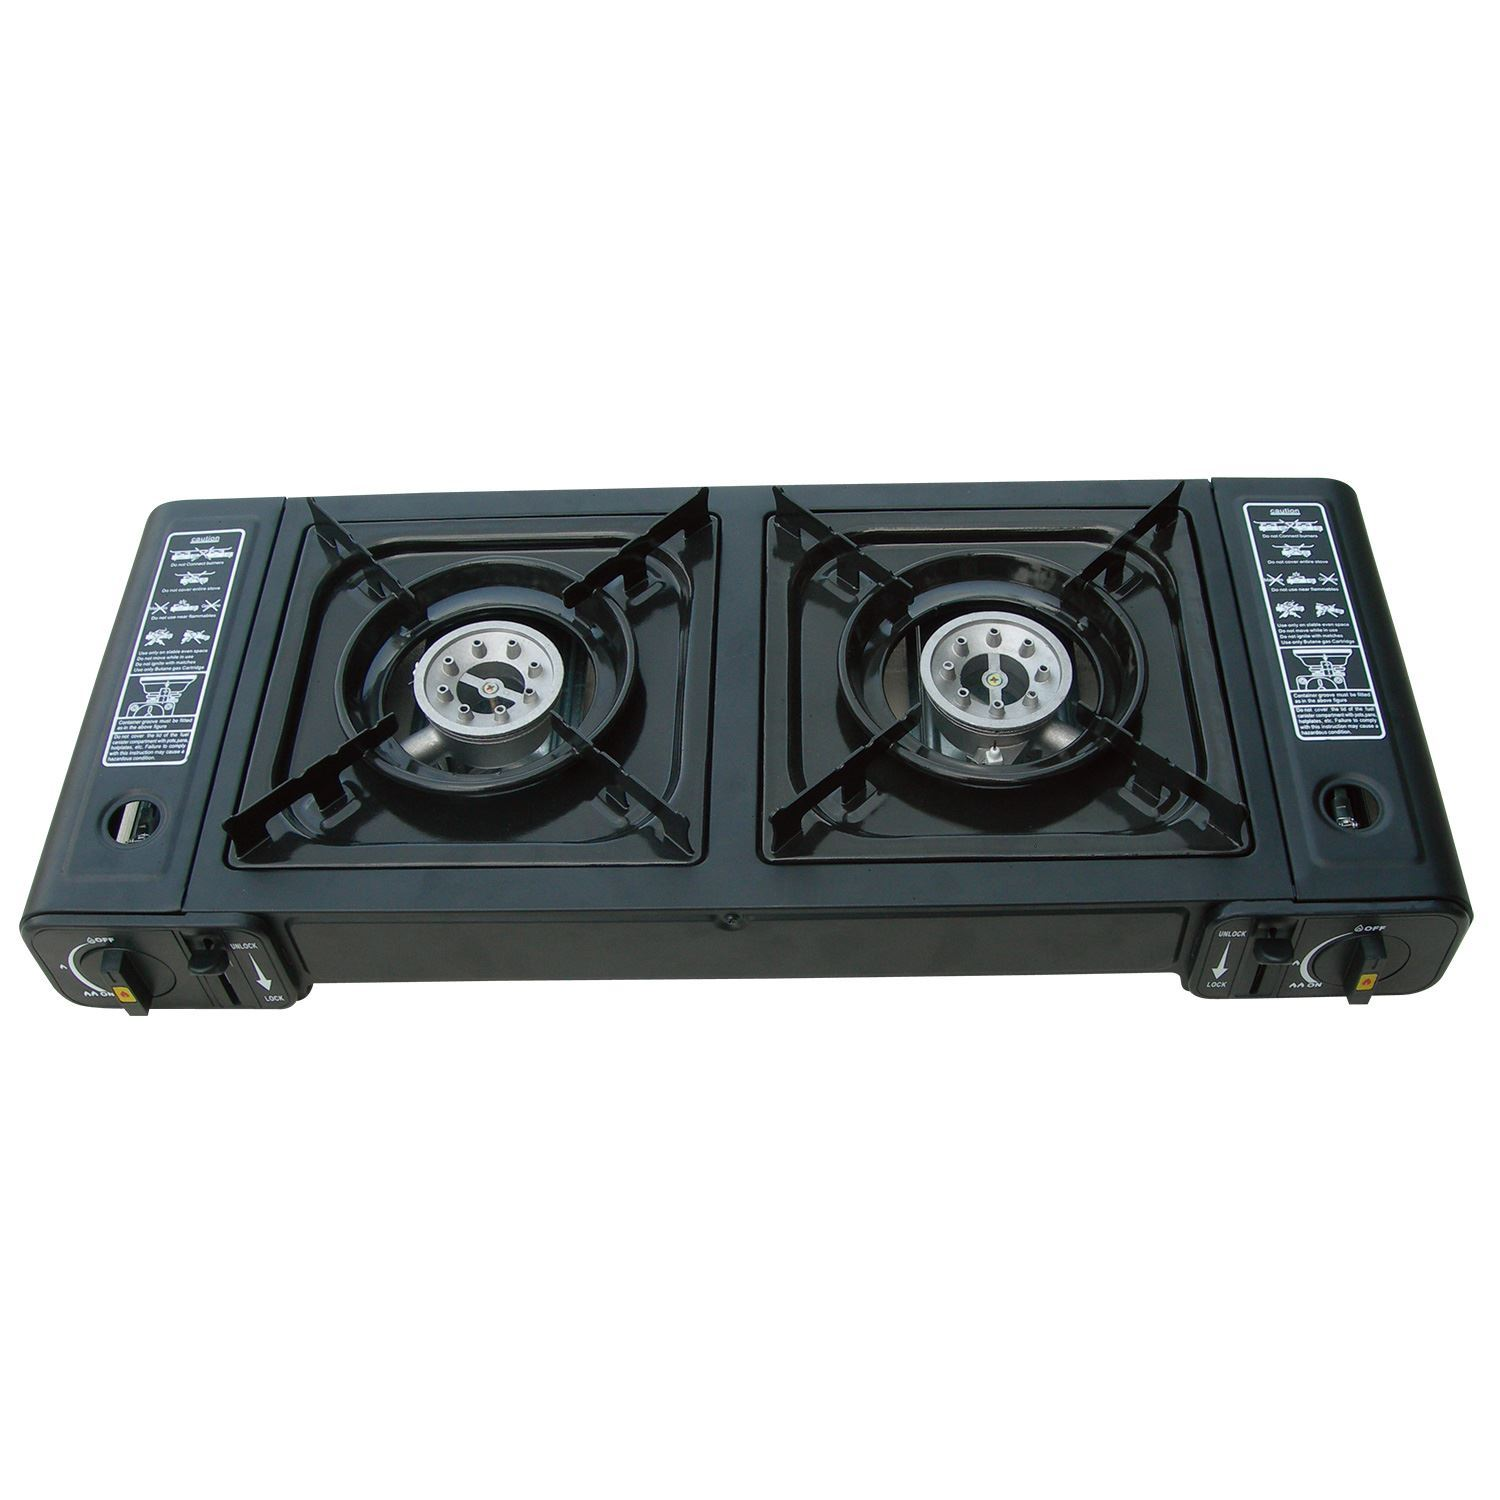 parkland portable double dual burner gas stove twin cooker camping fishing ebay. Black Bedroom Furniture Sets. Home Design Ideas